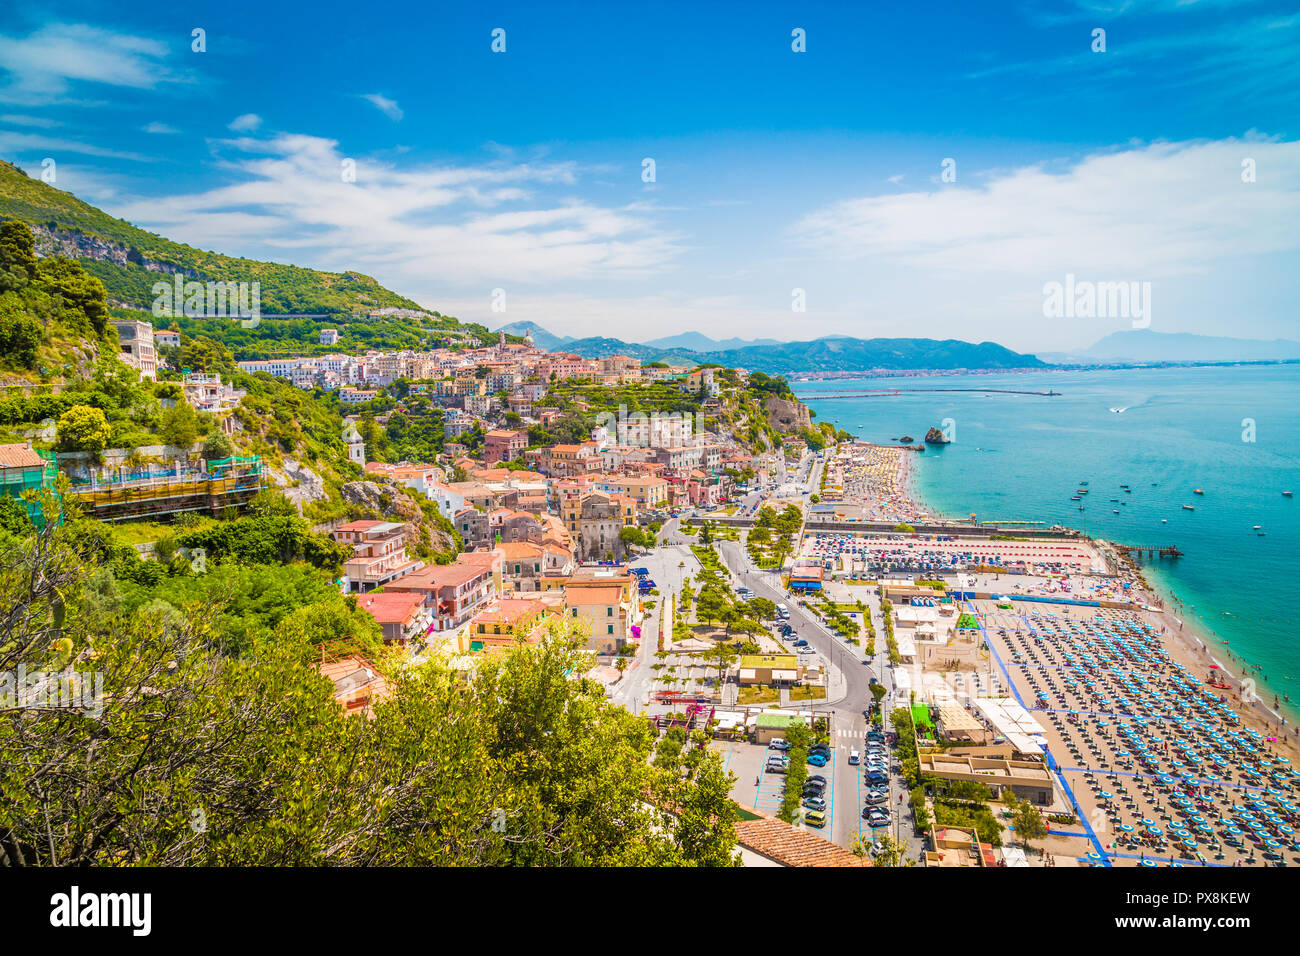 Beautiful view of Vietri sul Mare, the first town on the Amalfi Coast, with the Gulf of Salerno, province of Salerno, Campania, southern Italy Stock Photo